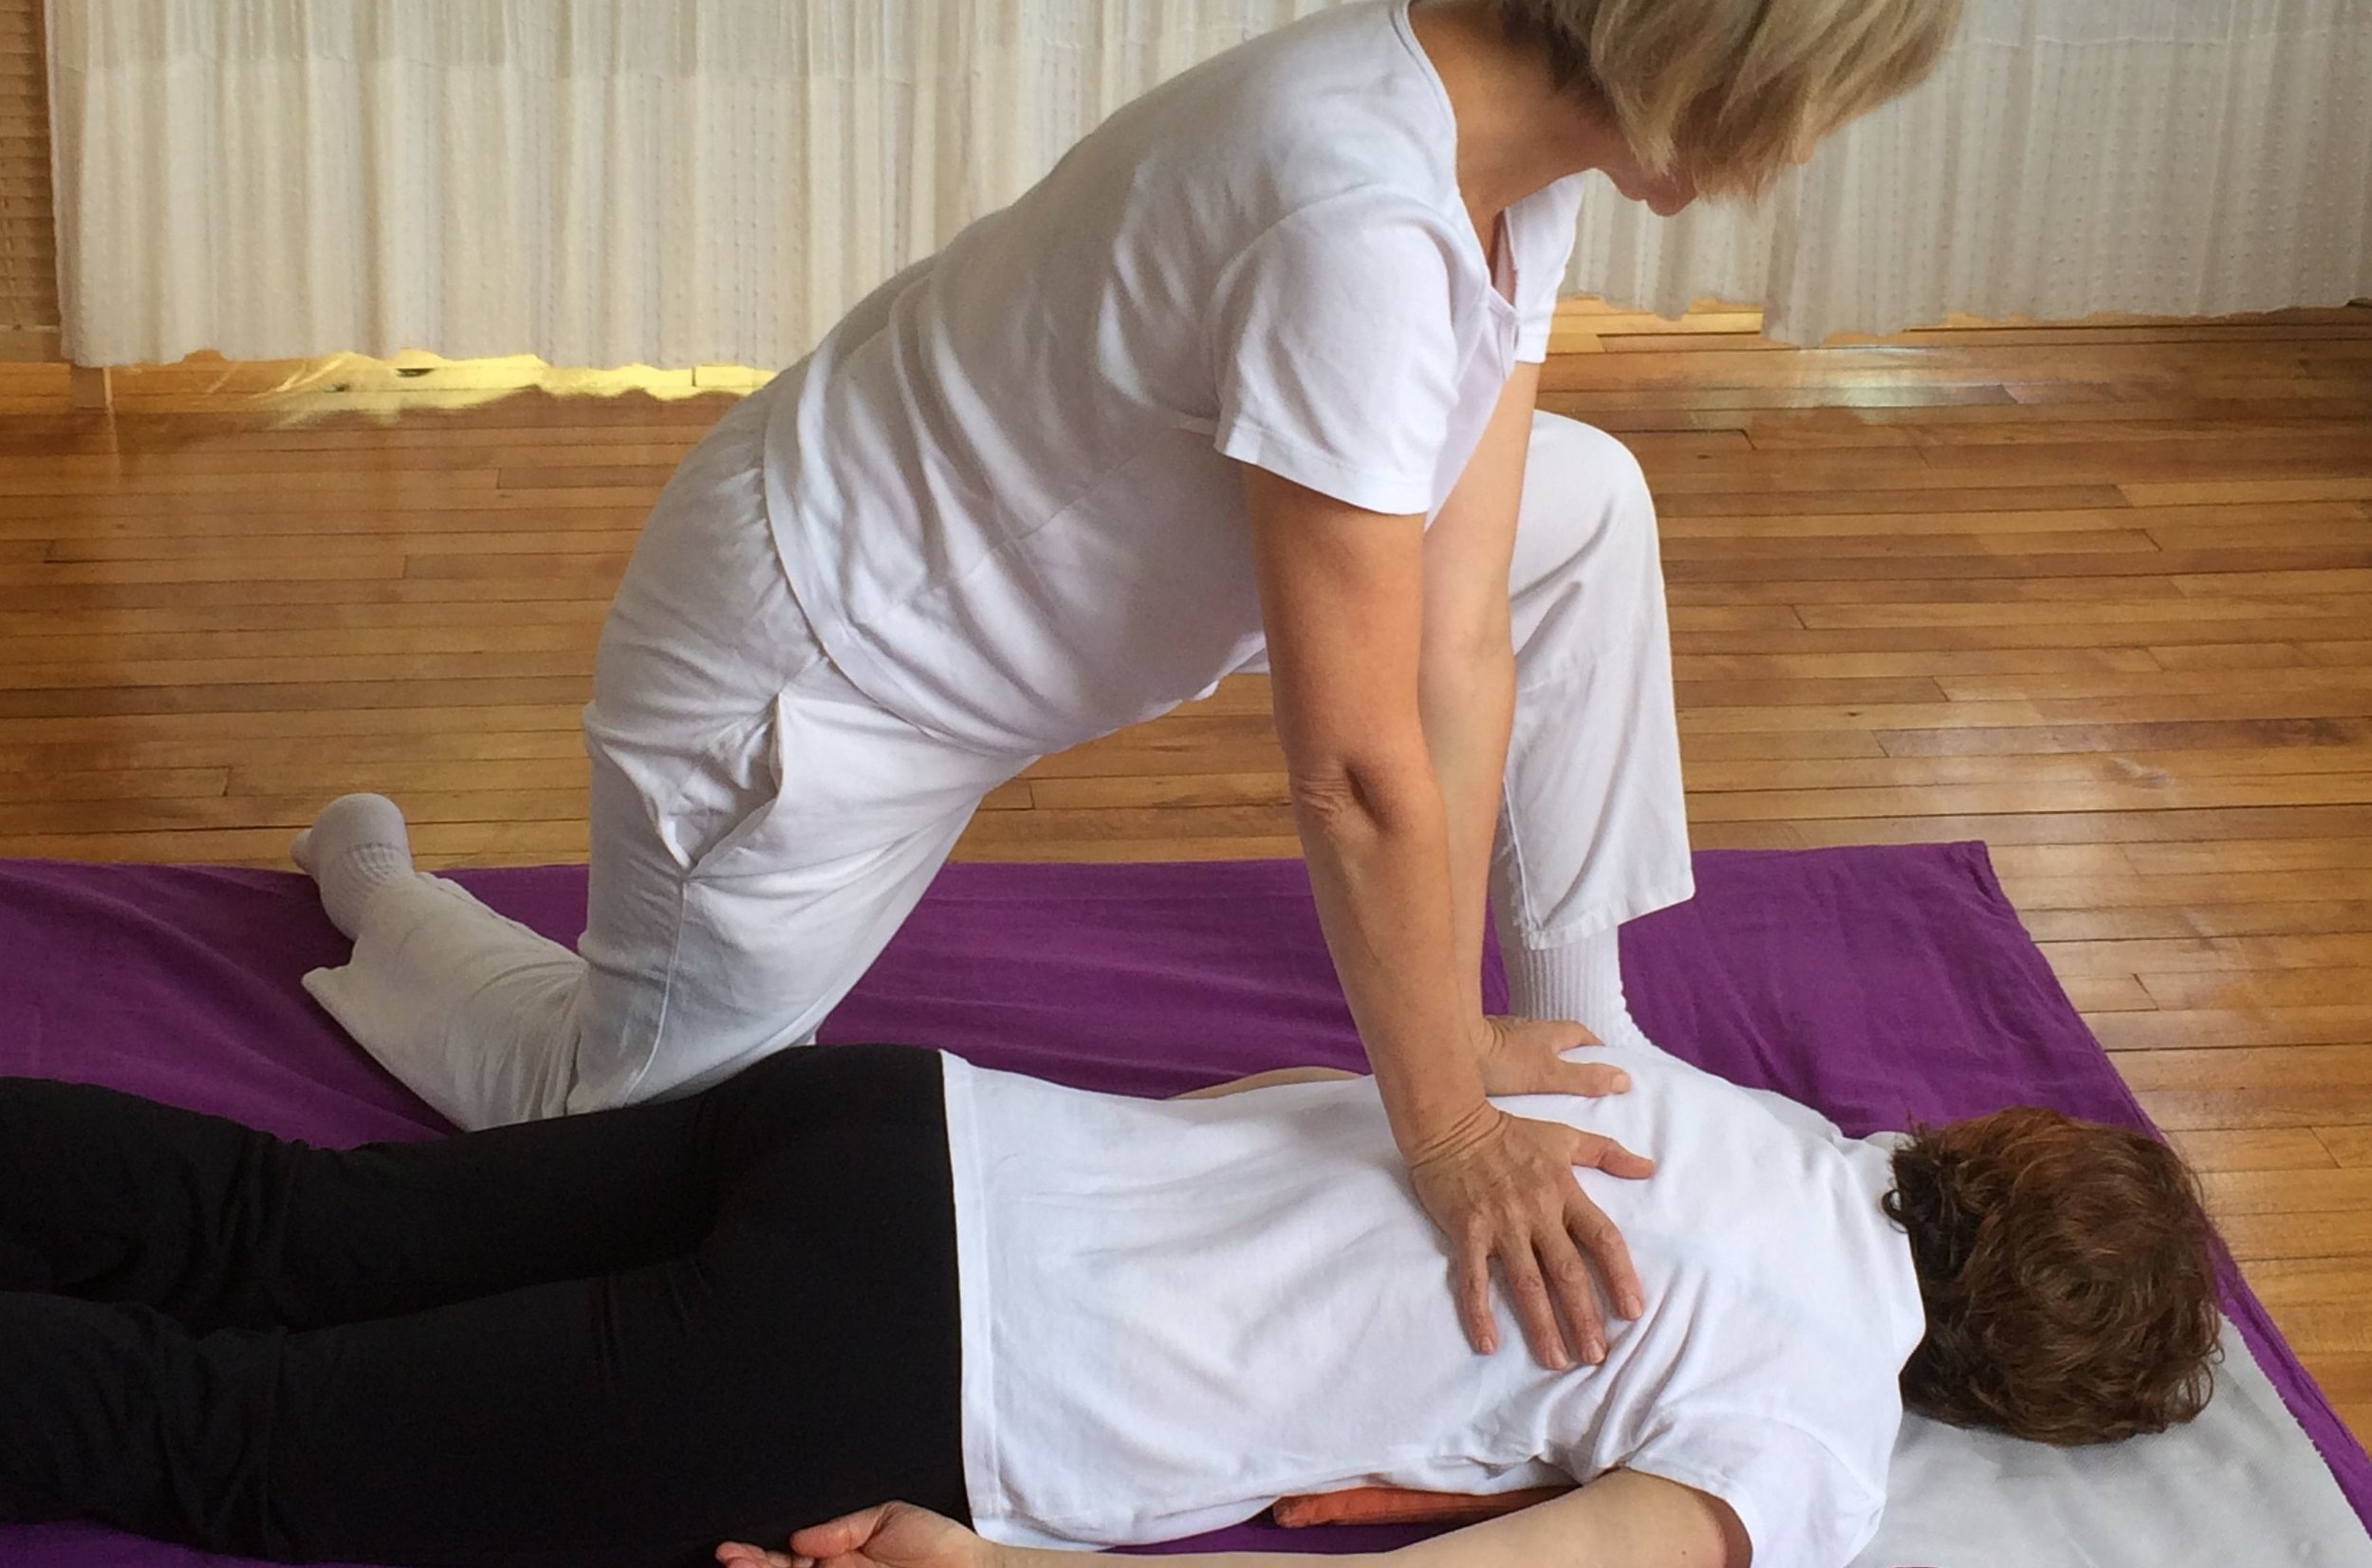 Shiatsu Massage - A deeply relaxing and extremely effective treatment using therapeutic touch. It encourages the body's natural ability to repair, rebalance and integrate mind and body for positive change and improved quality of life